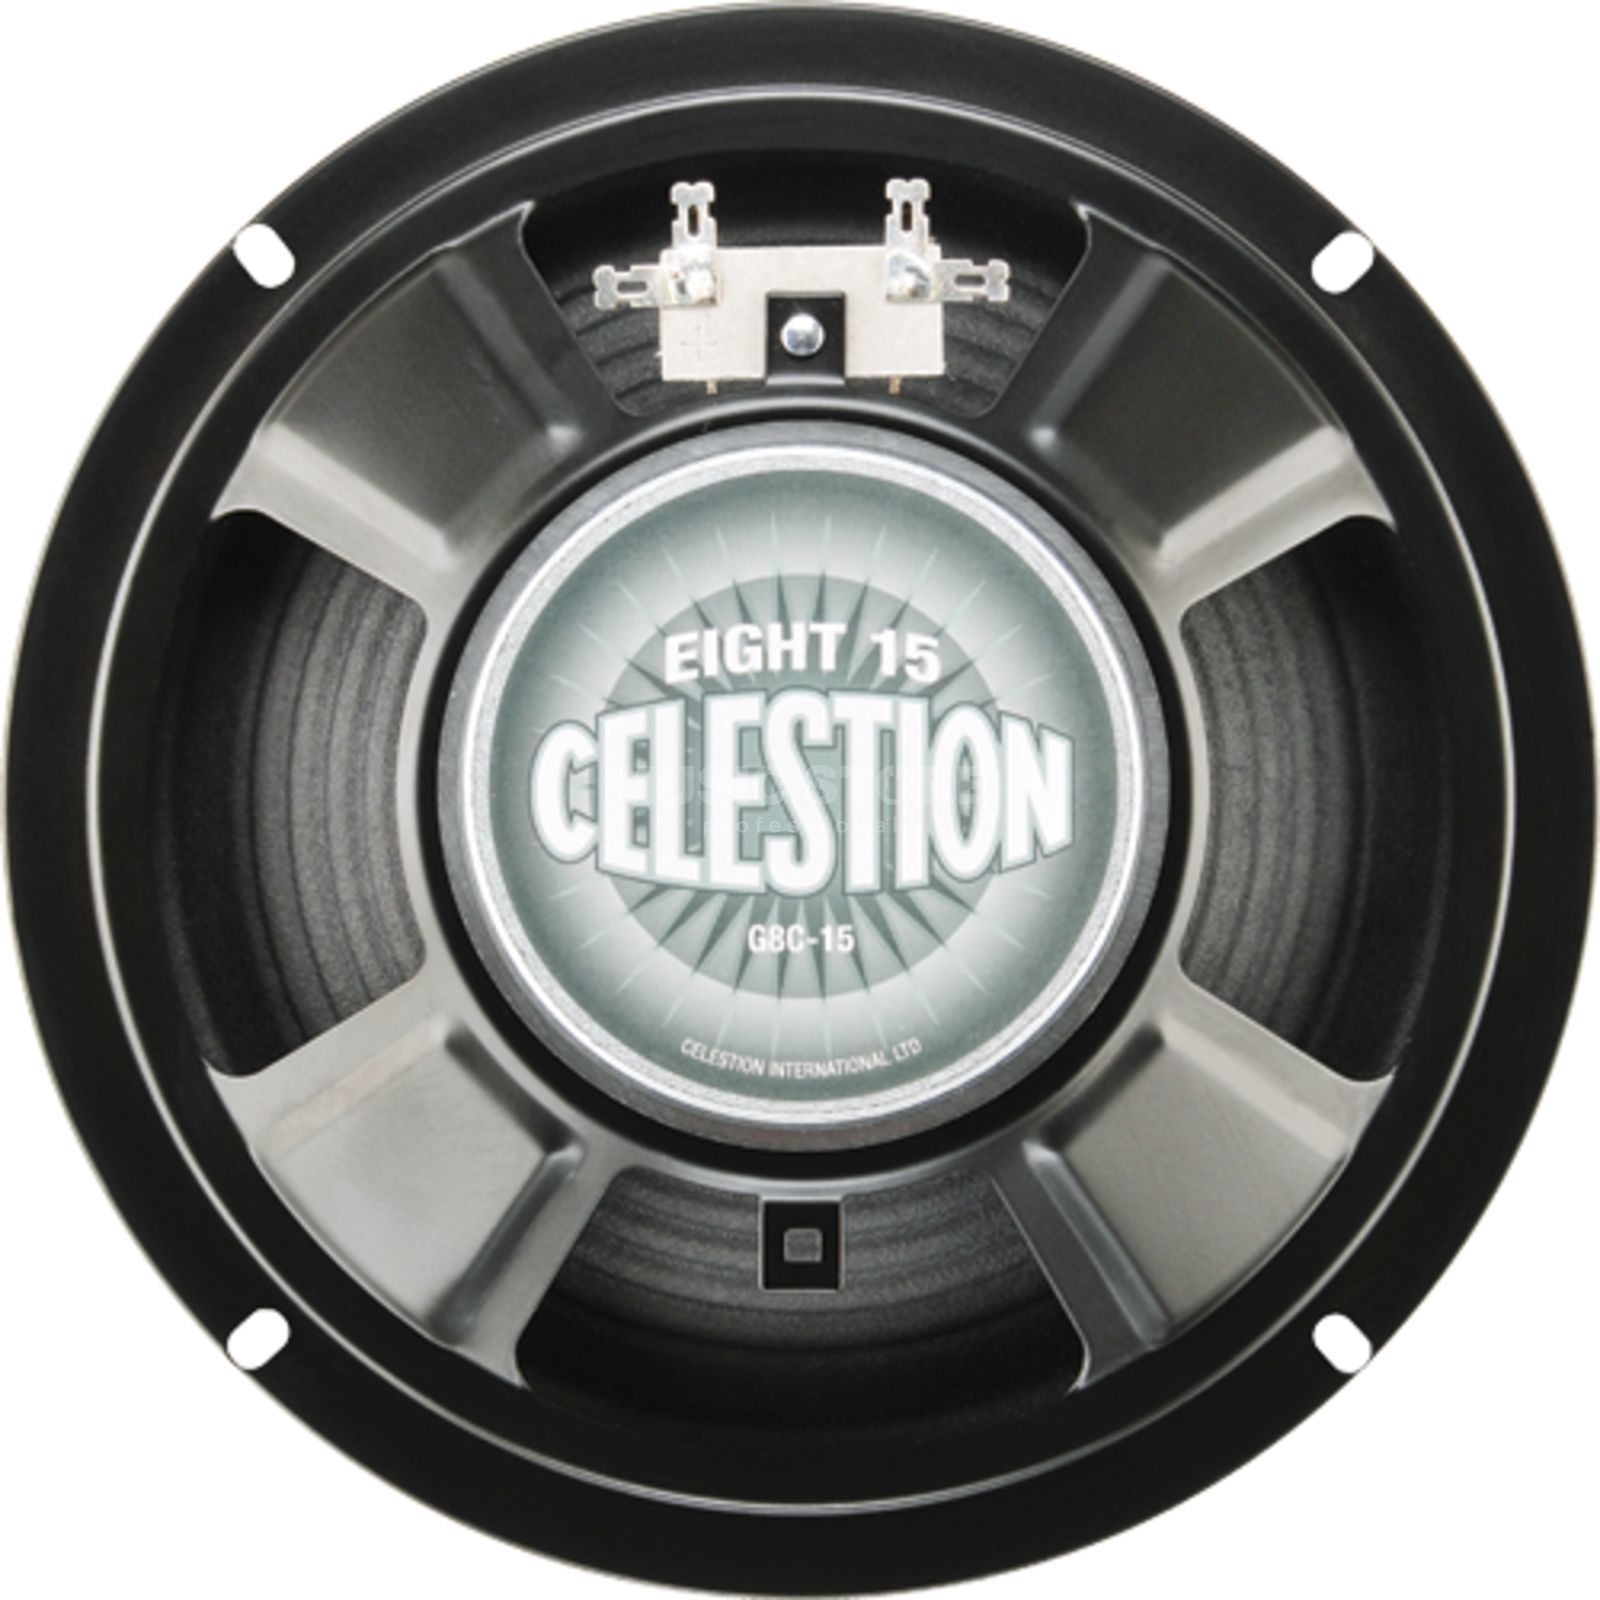 "Celestion Eight 15 8"" 15W 4 Ohm 95db Produktbillede"